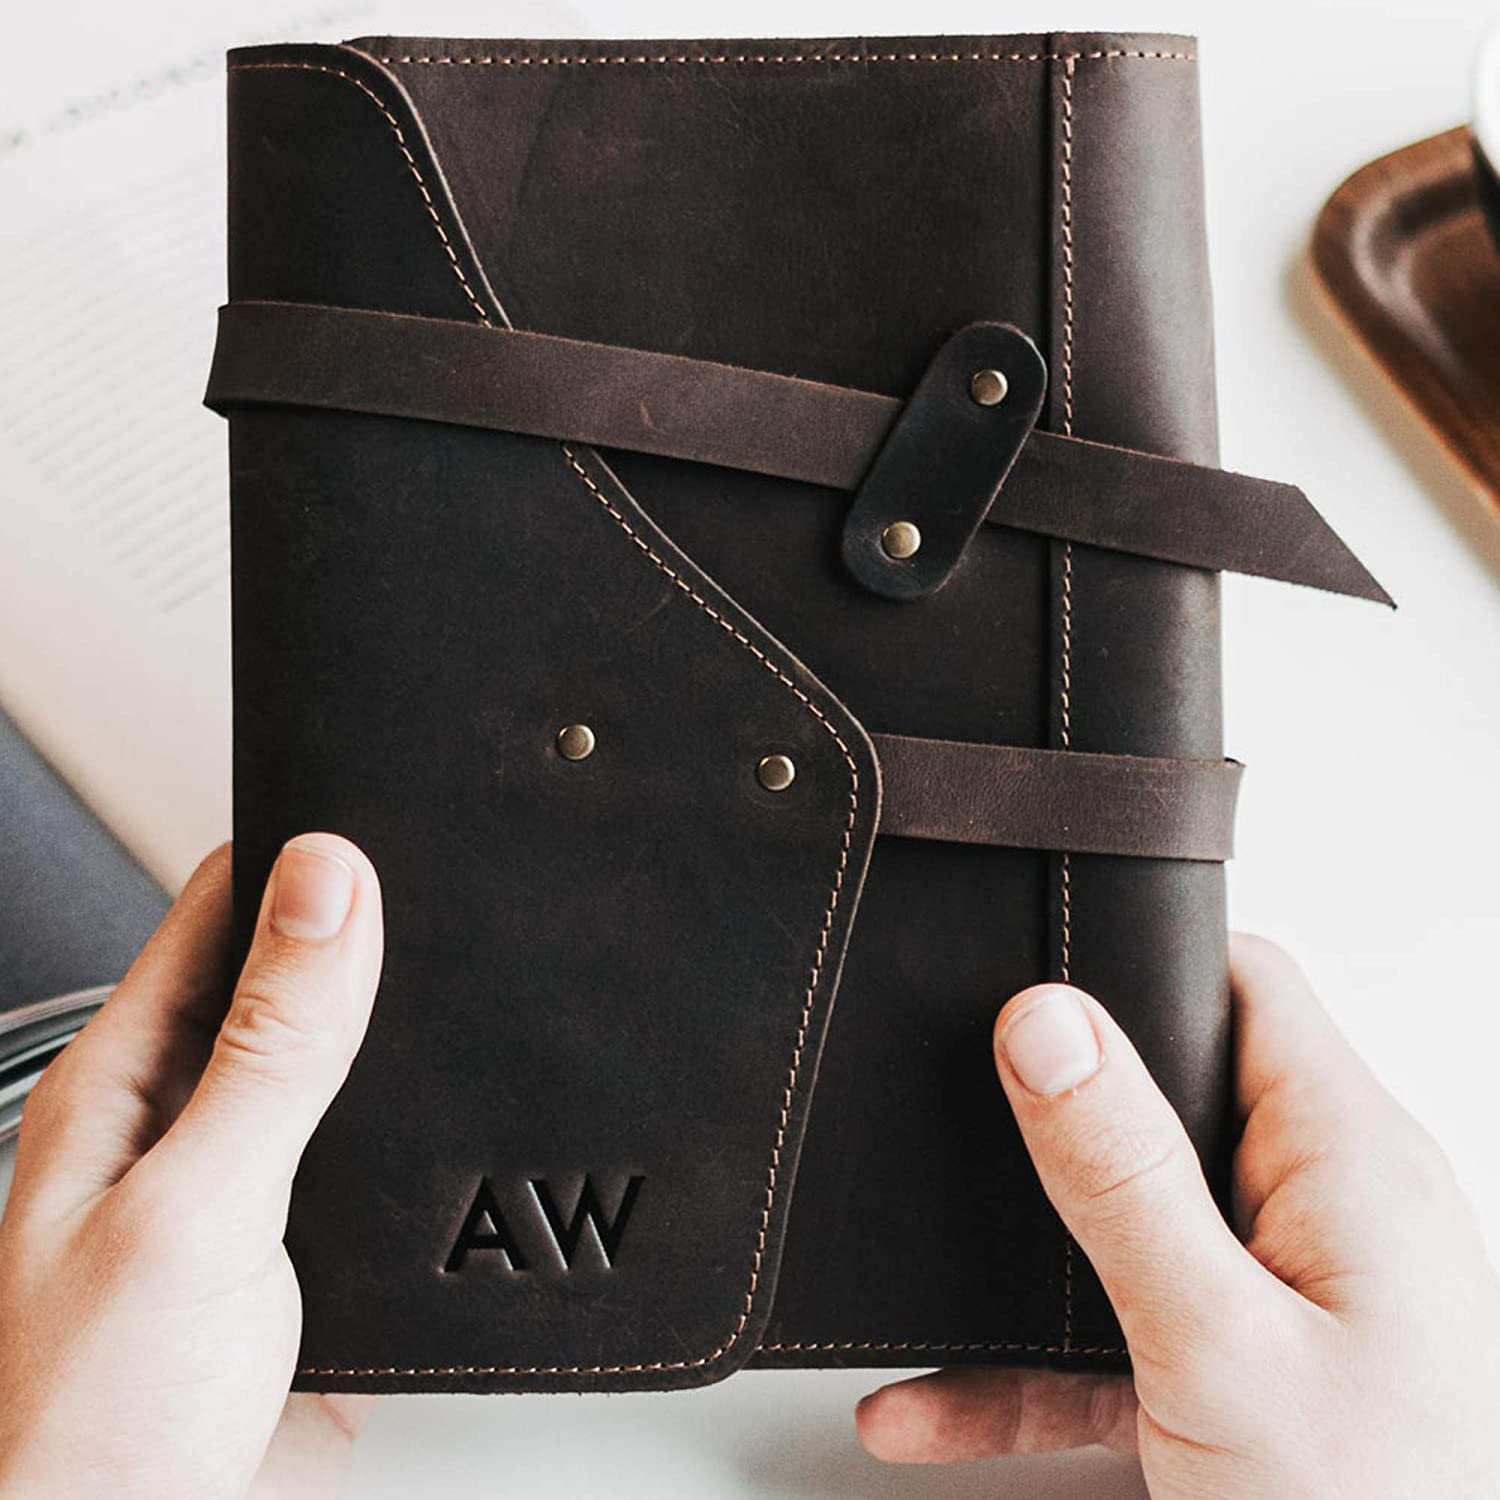 Leather Refillable Journal Stechbook Notebook Diary Business Journal 3rd Anniversary Gift for Husband Boyfriend Father's Day